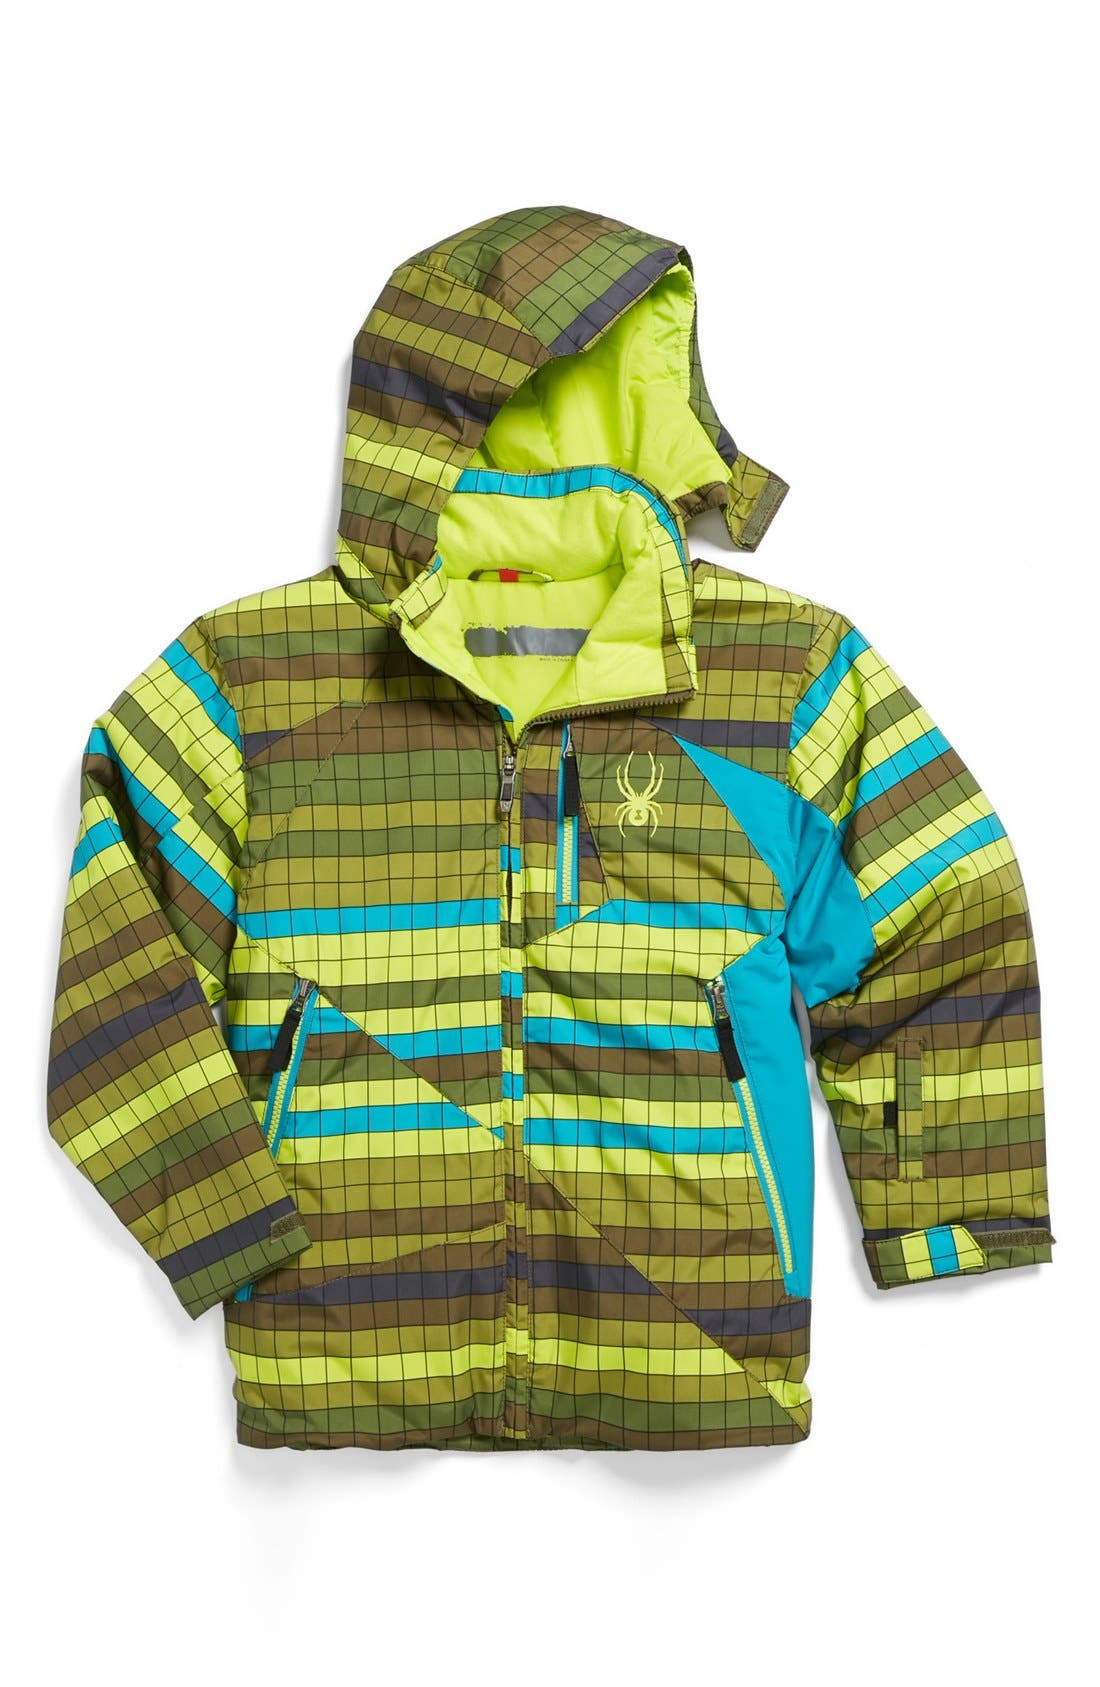 Main Image - Spyder 'Armageddon' Waterproof Snow Jacket (Little Boys)